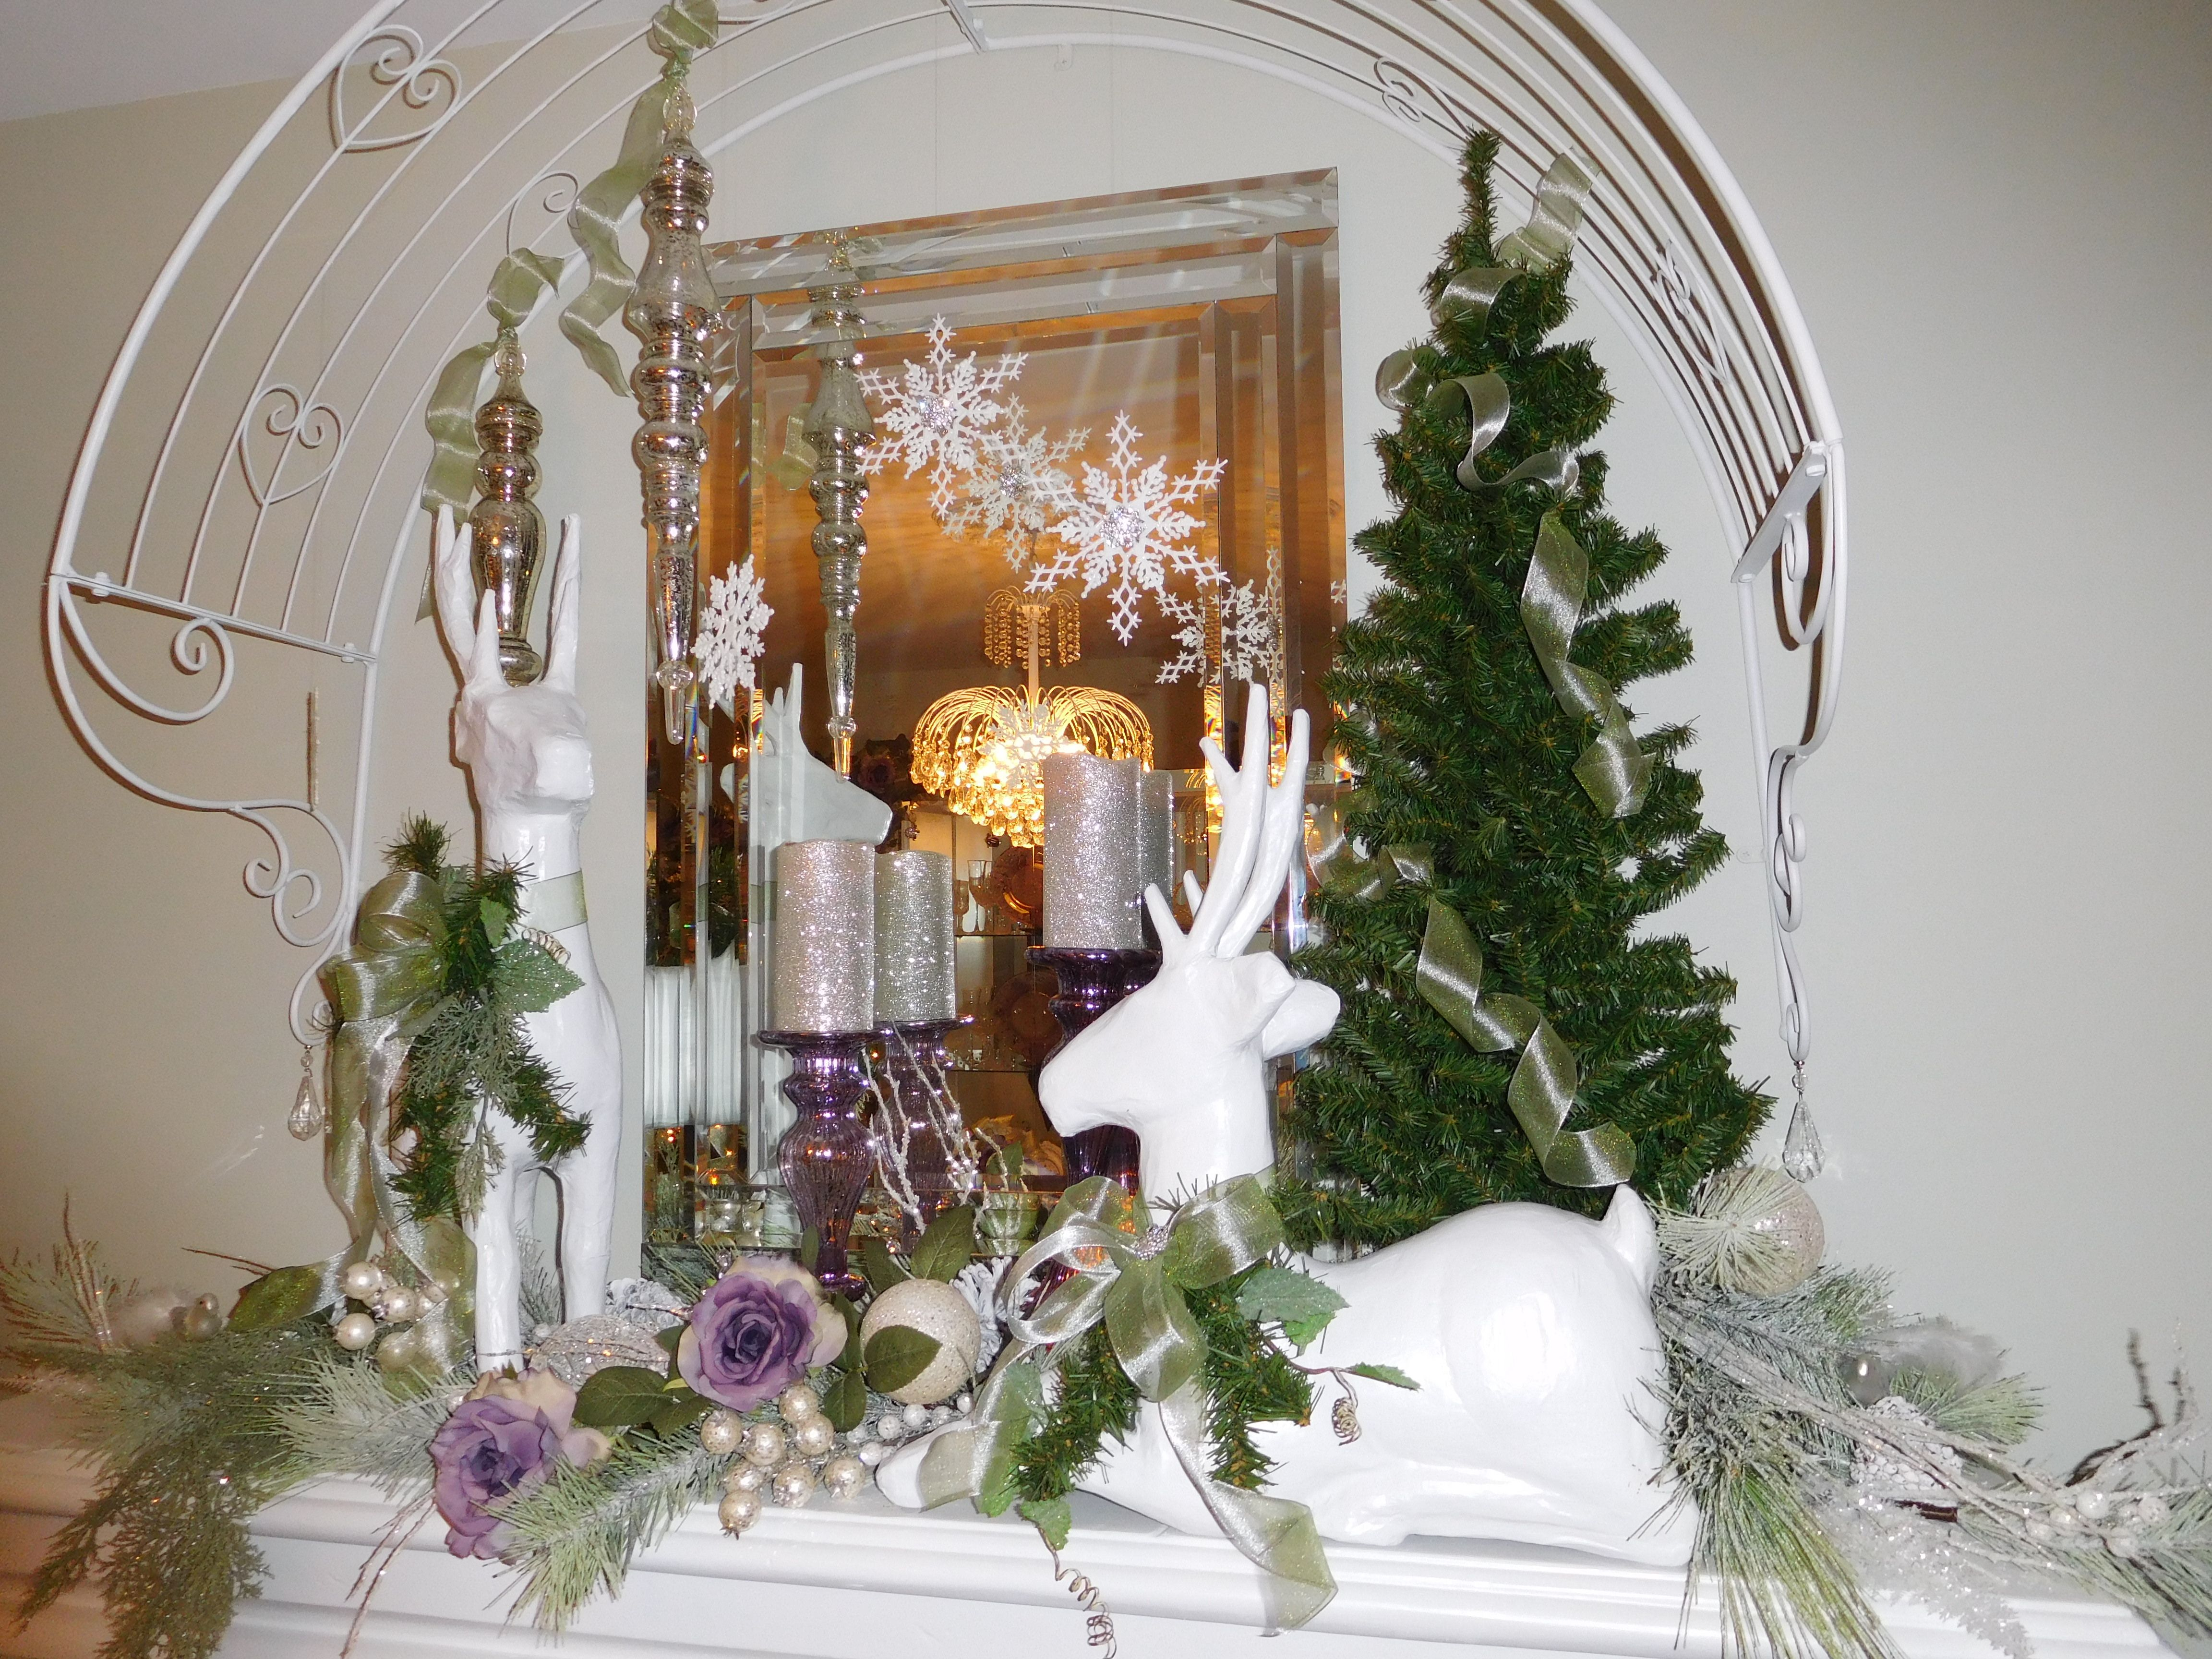 Christmas fireplace with deer and purple roses